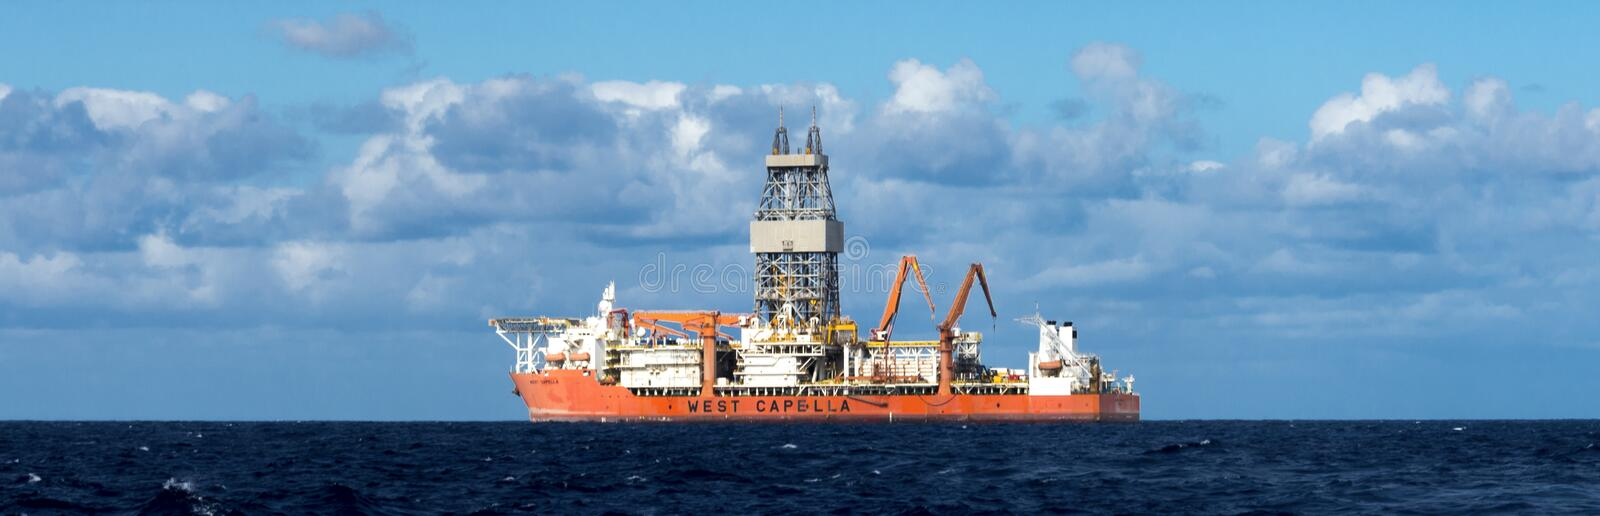 West Capella drillship for offshore deepwater drilling in Atlantic ocean nearby Tenerife, Canary Islands, Spain. May 2017 royalty free stock image